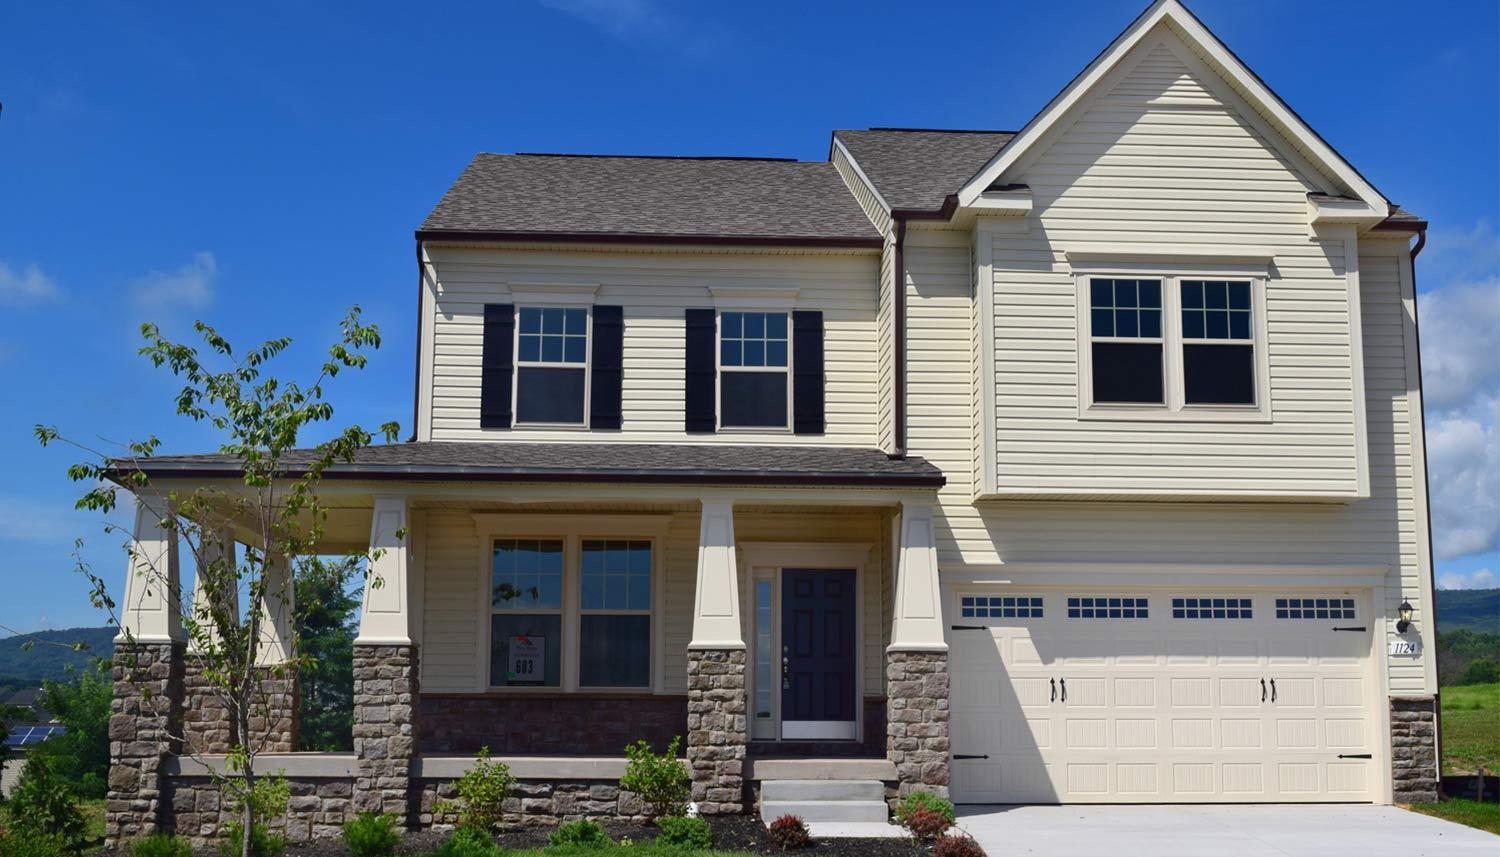 Real Estate at 1124 Saxton Drive, Frederick in Frederick County, MD 21702